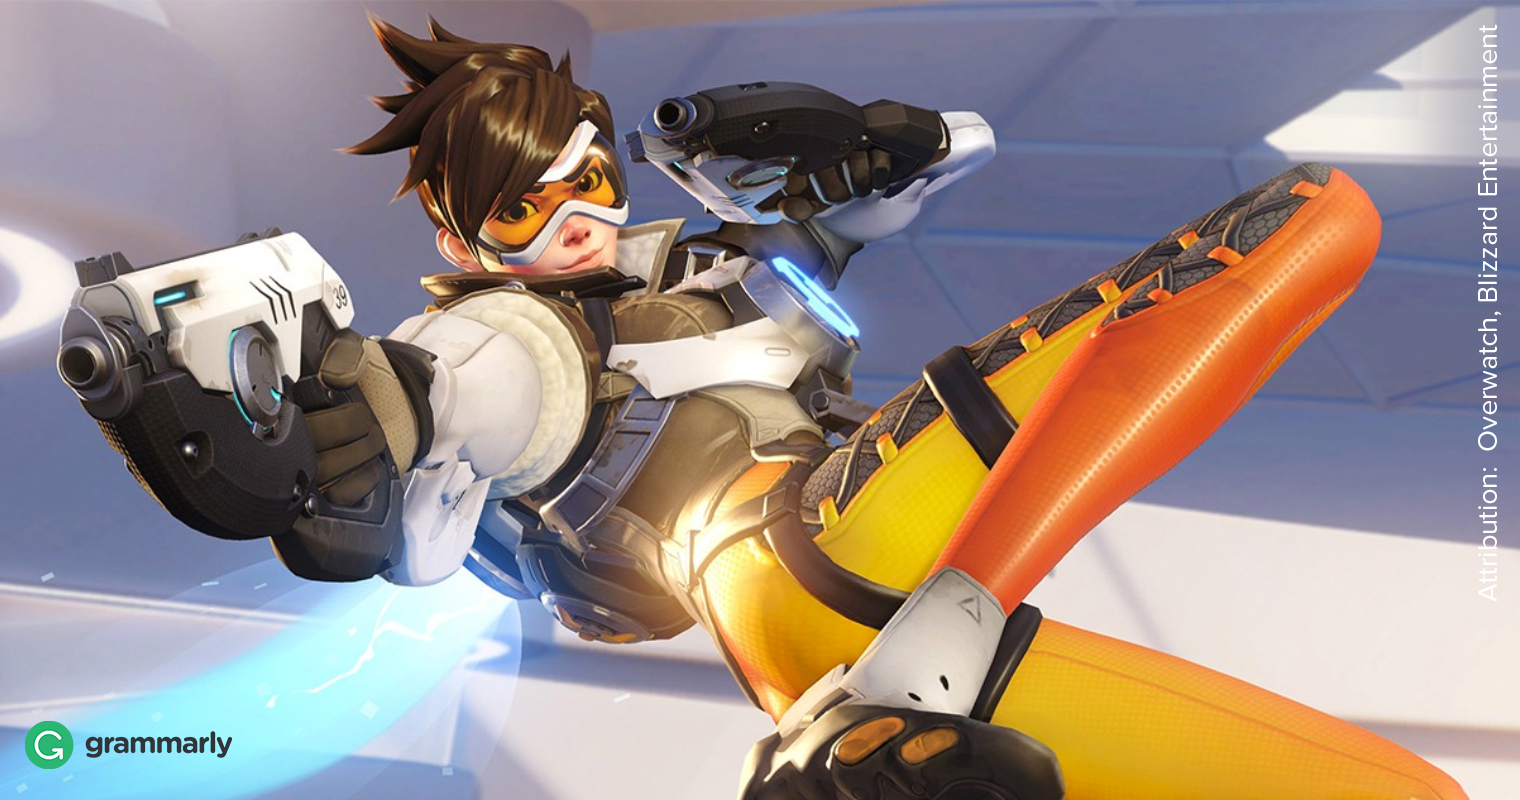 5 Overwatch Teamwork Tactics You Can Take to Work